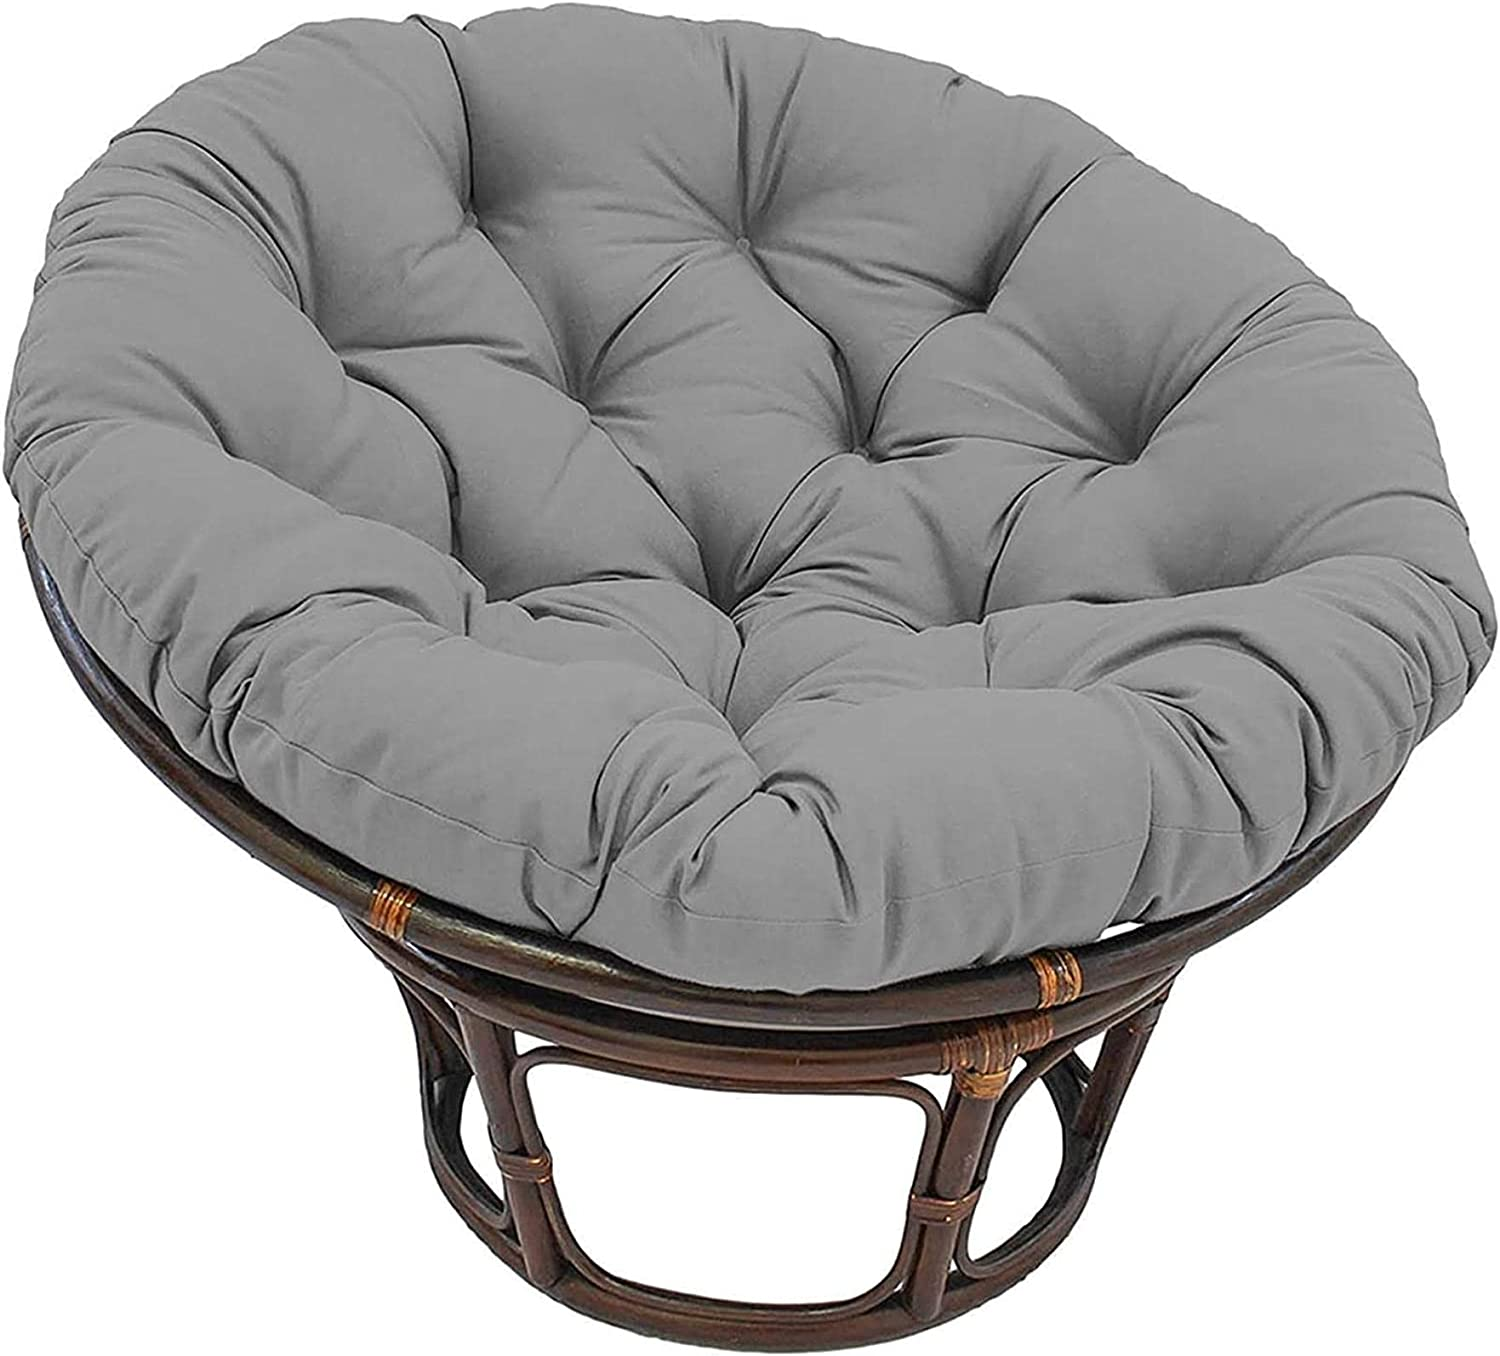 HZYDD Chaise Lounge Cushion Premium Chair Ranking TOP5 Soft Round free shipping Rocking Cus